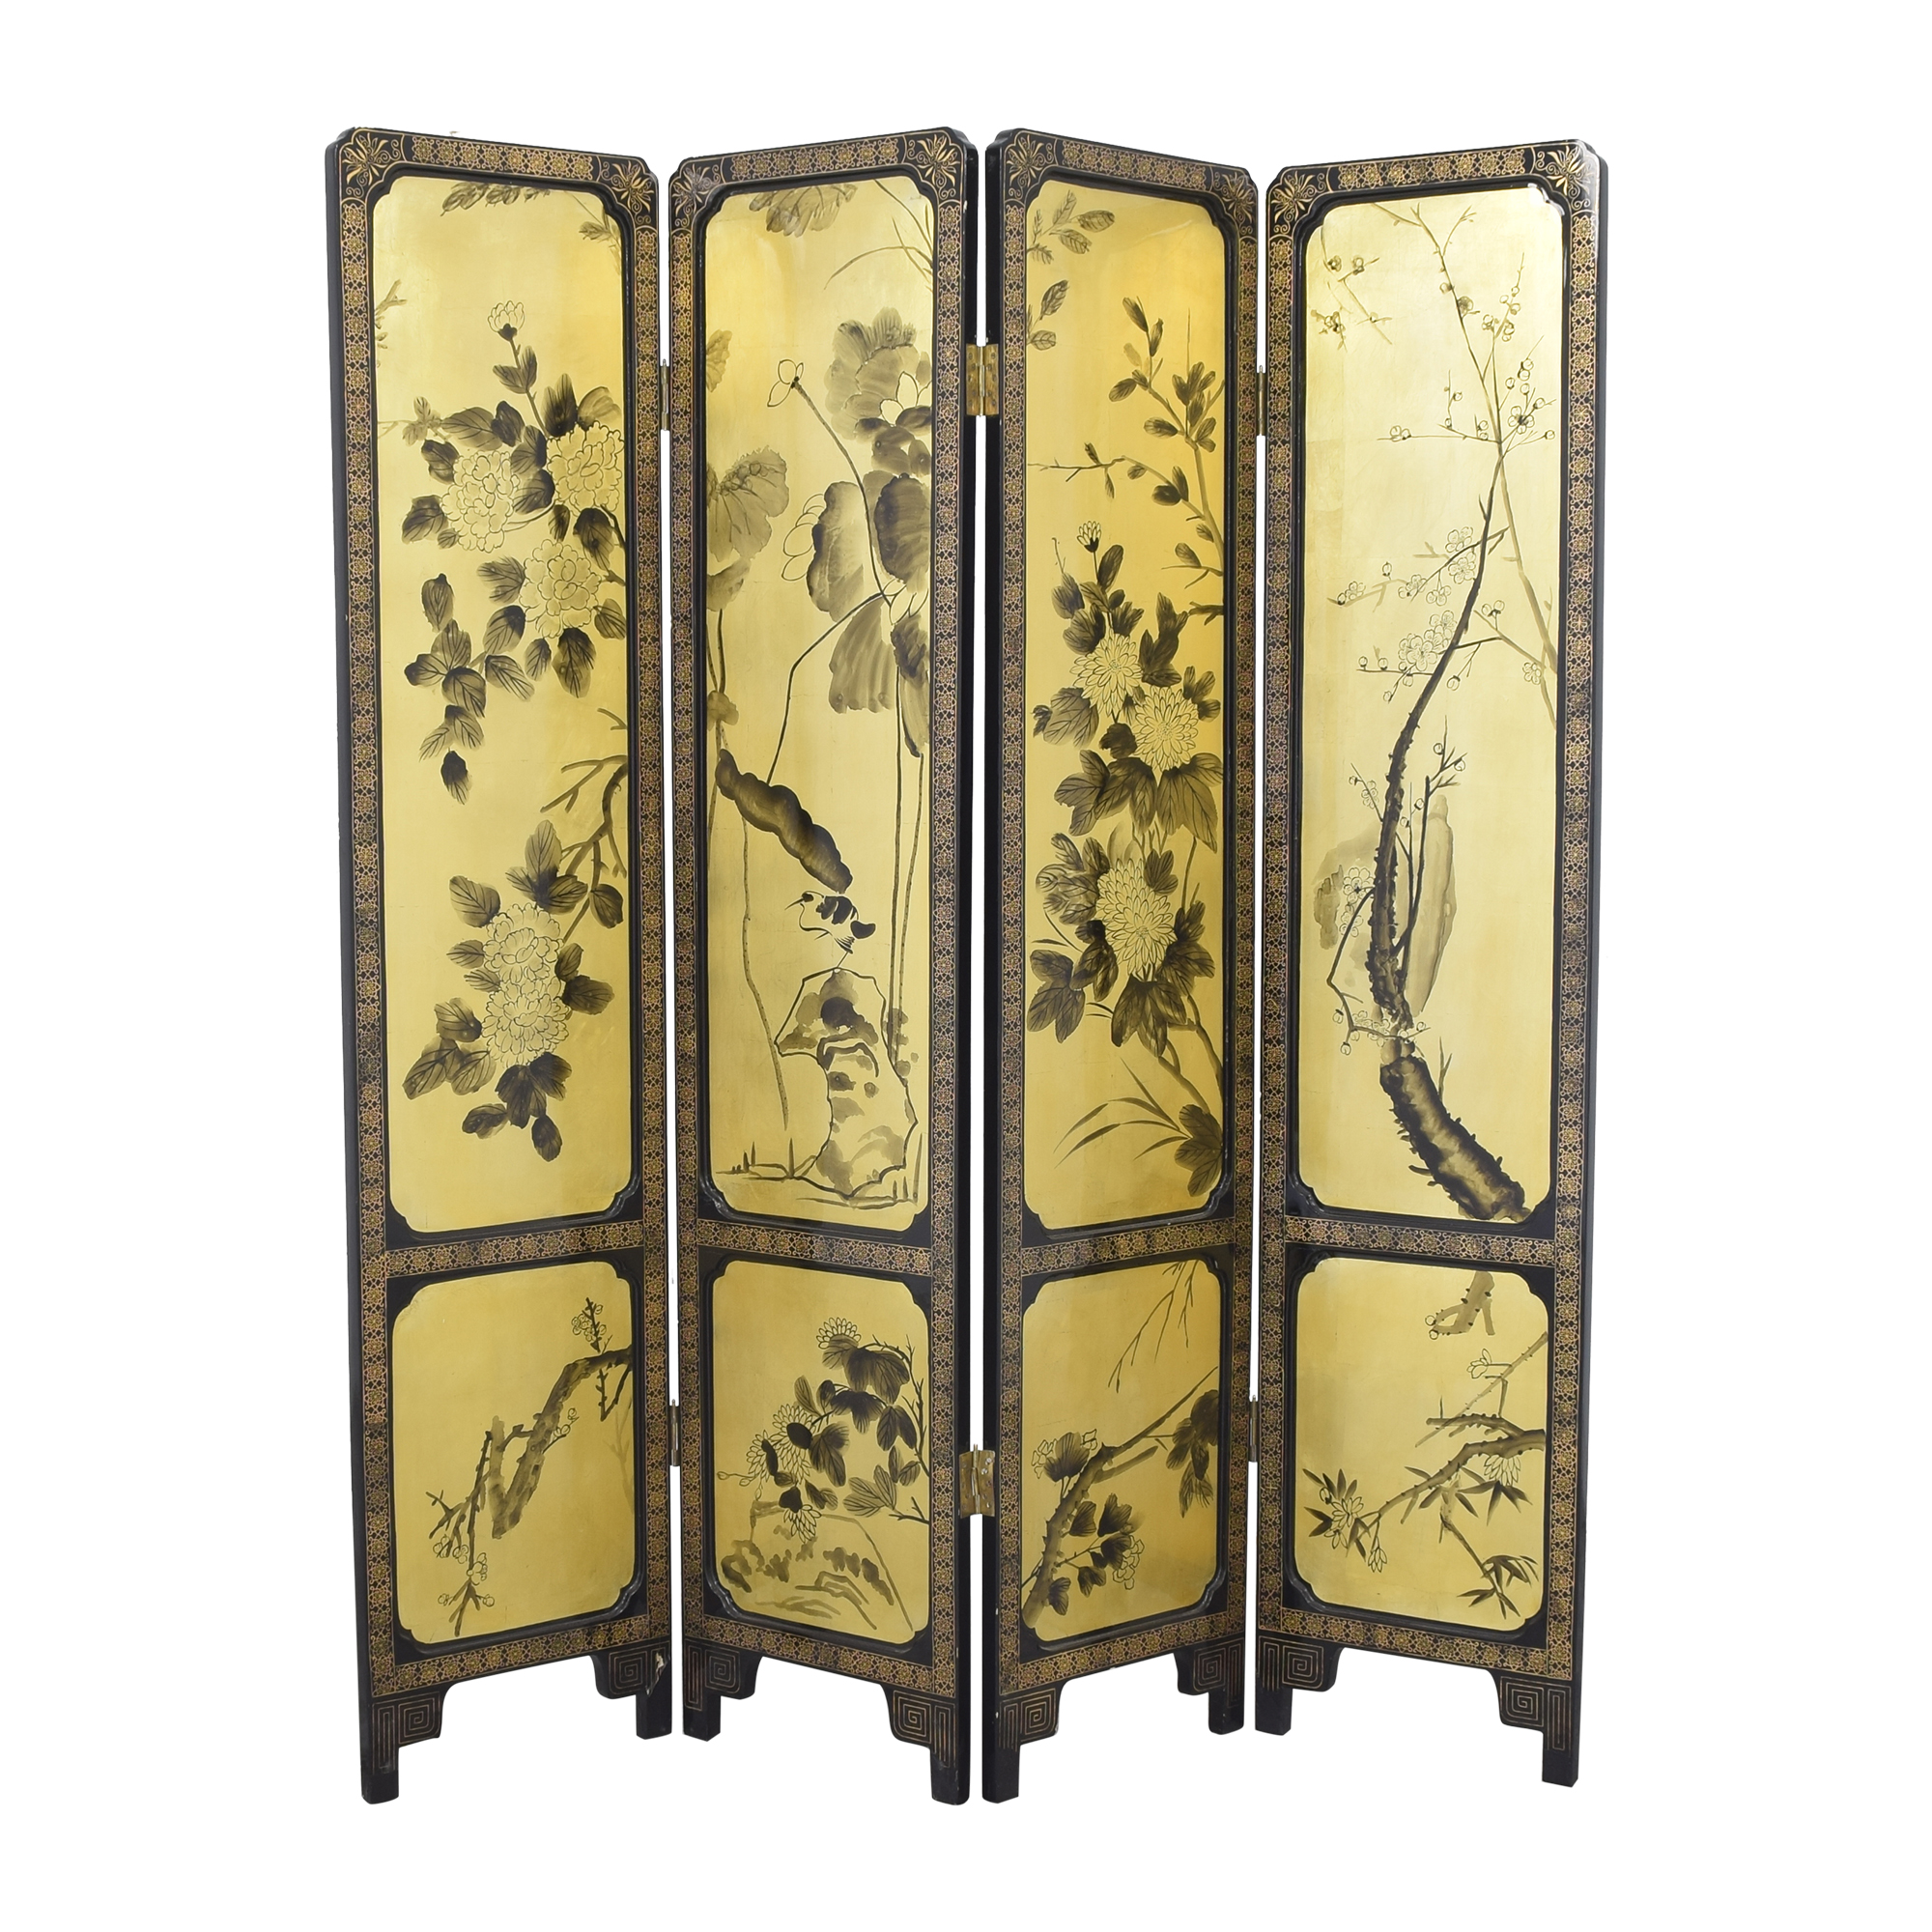 Four Panel Room Divider ma